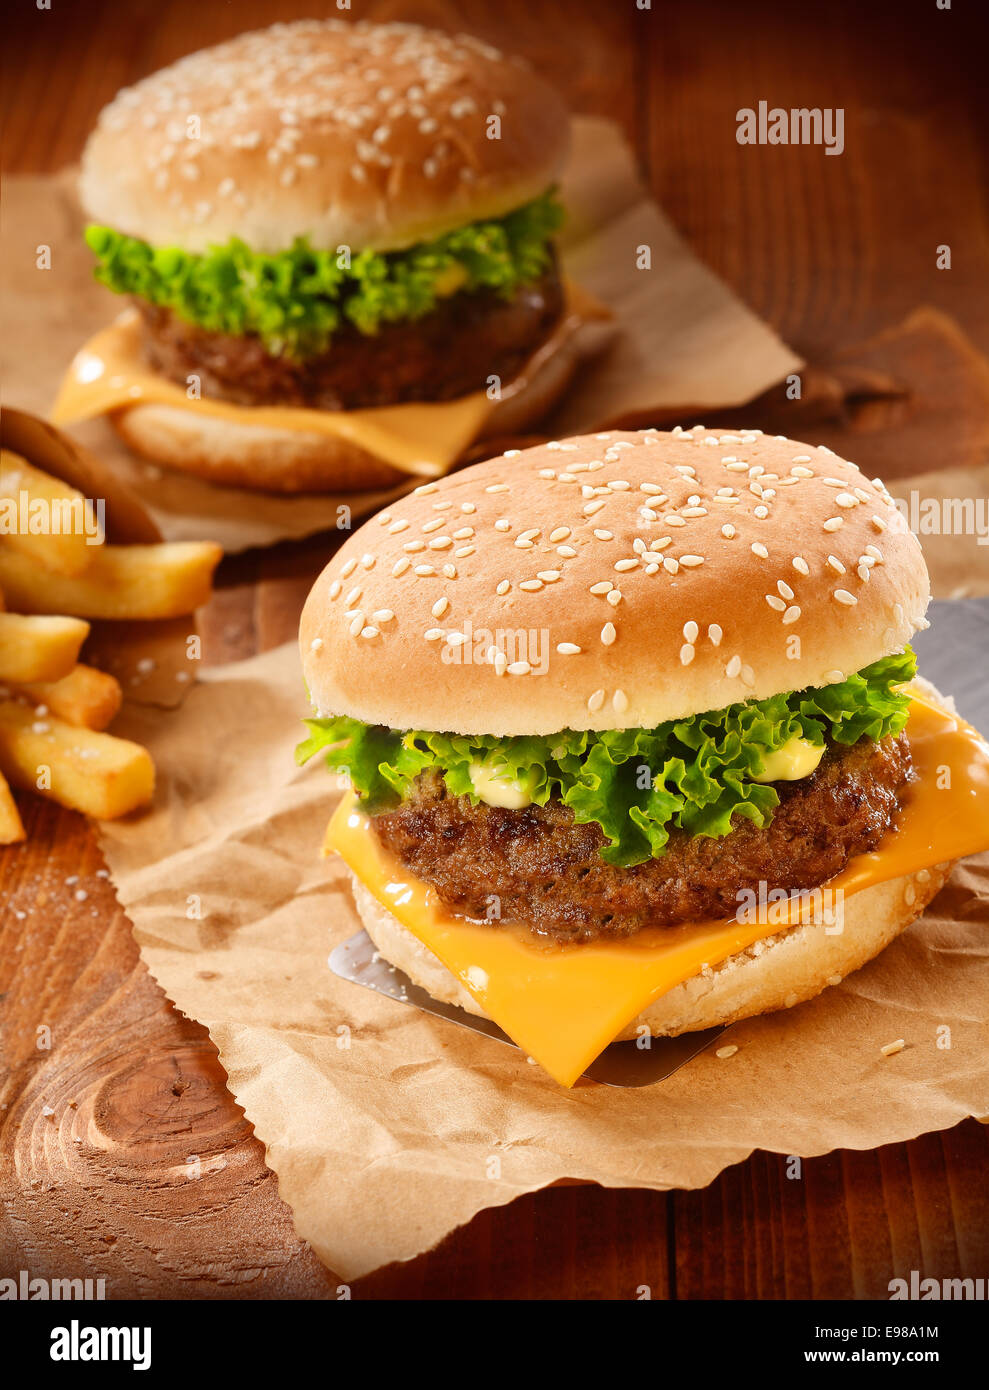 Two hamburgers and french fries on brown paper - Stock Image